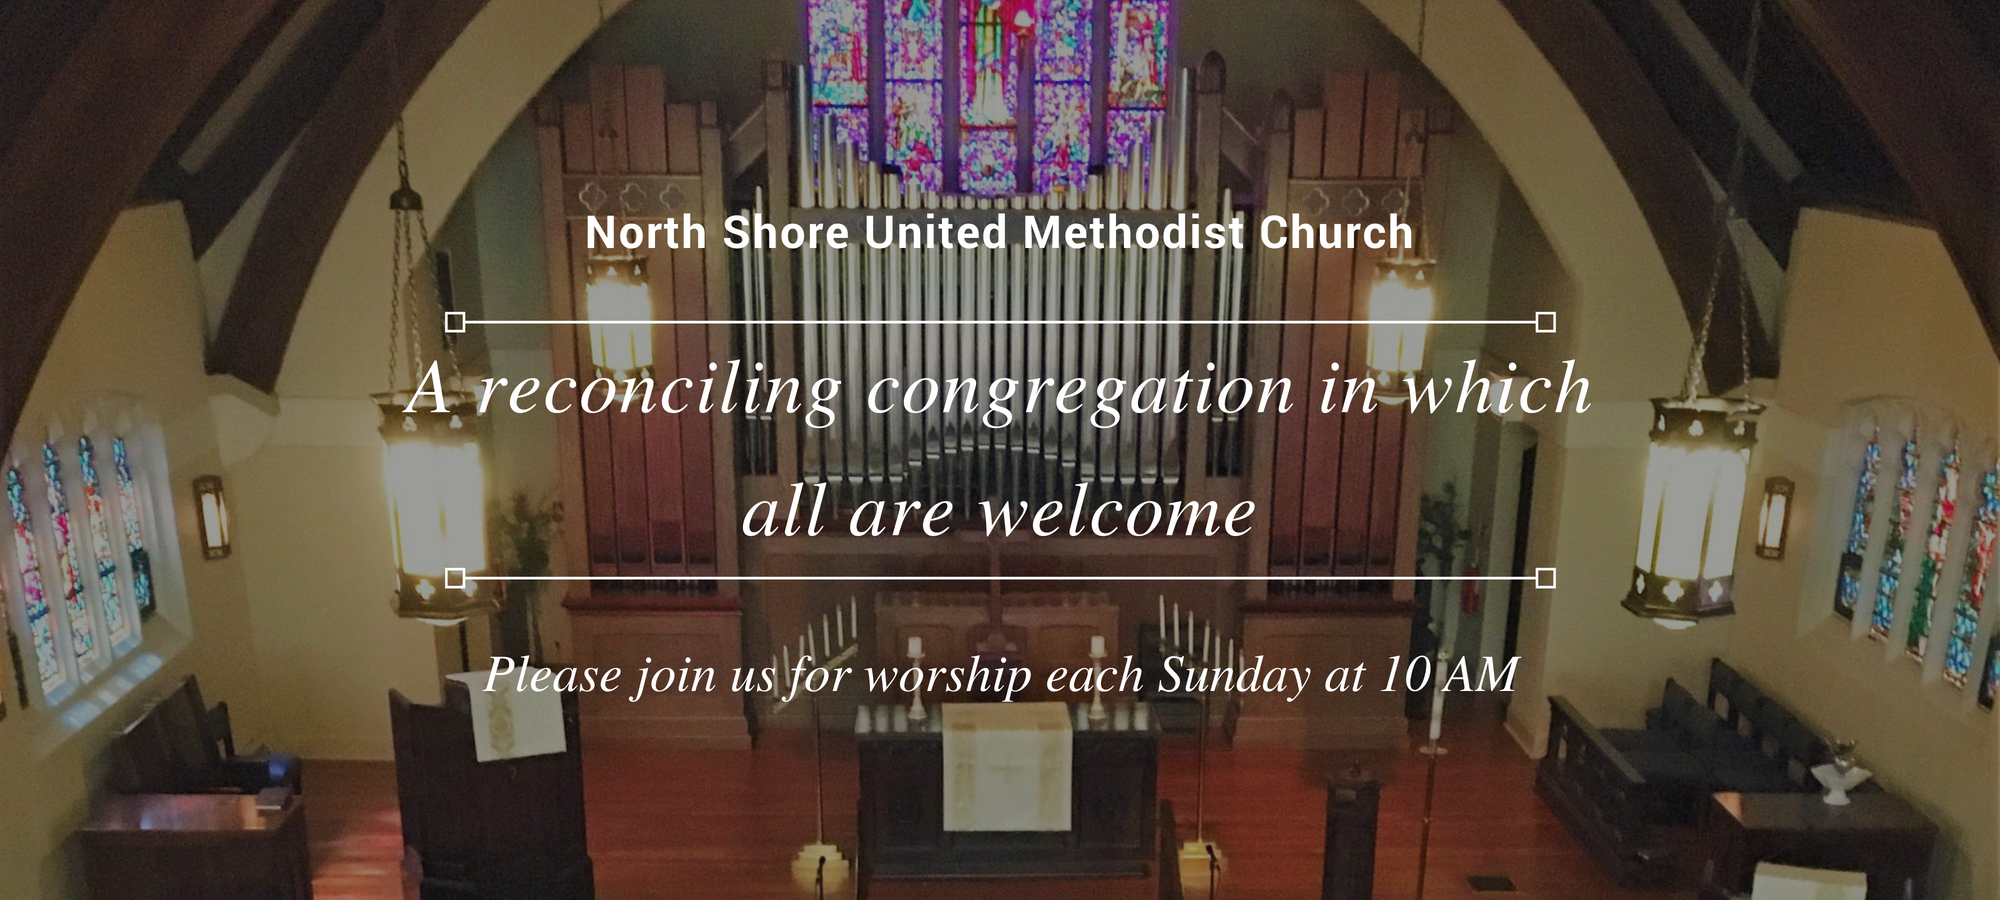 North Shore UMC